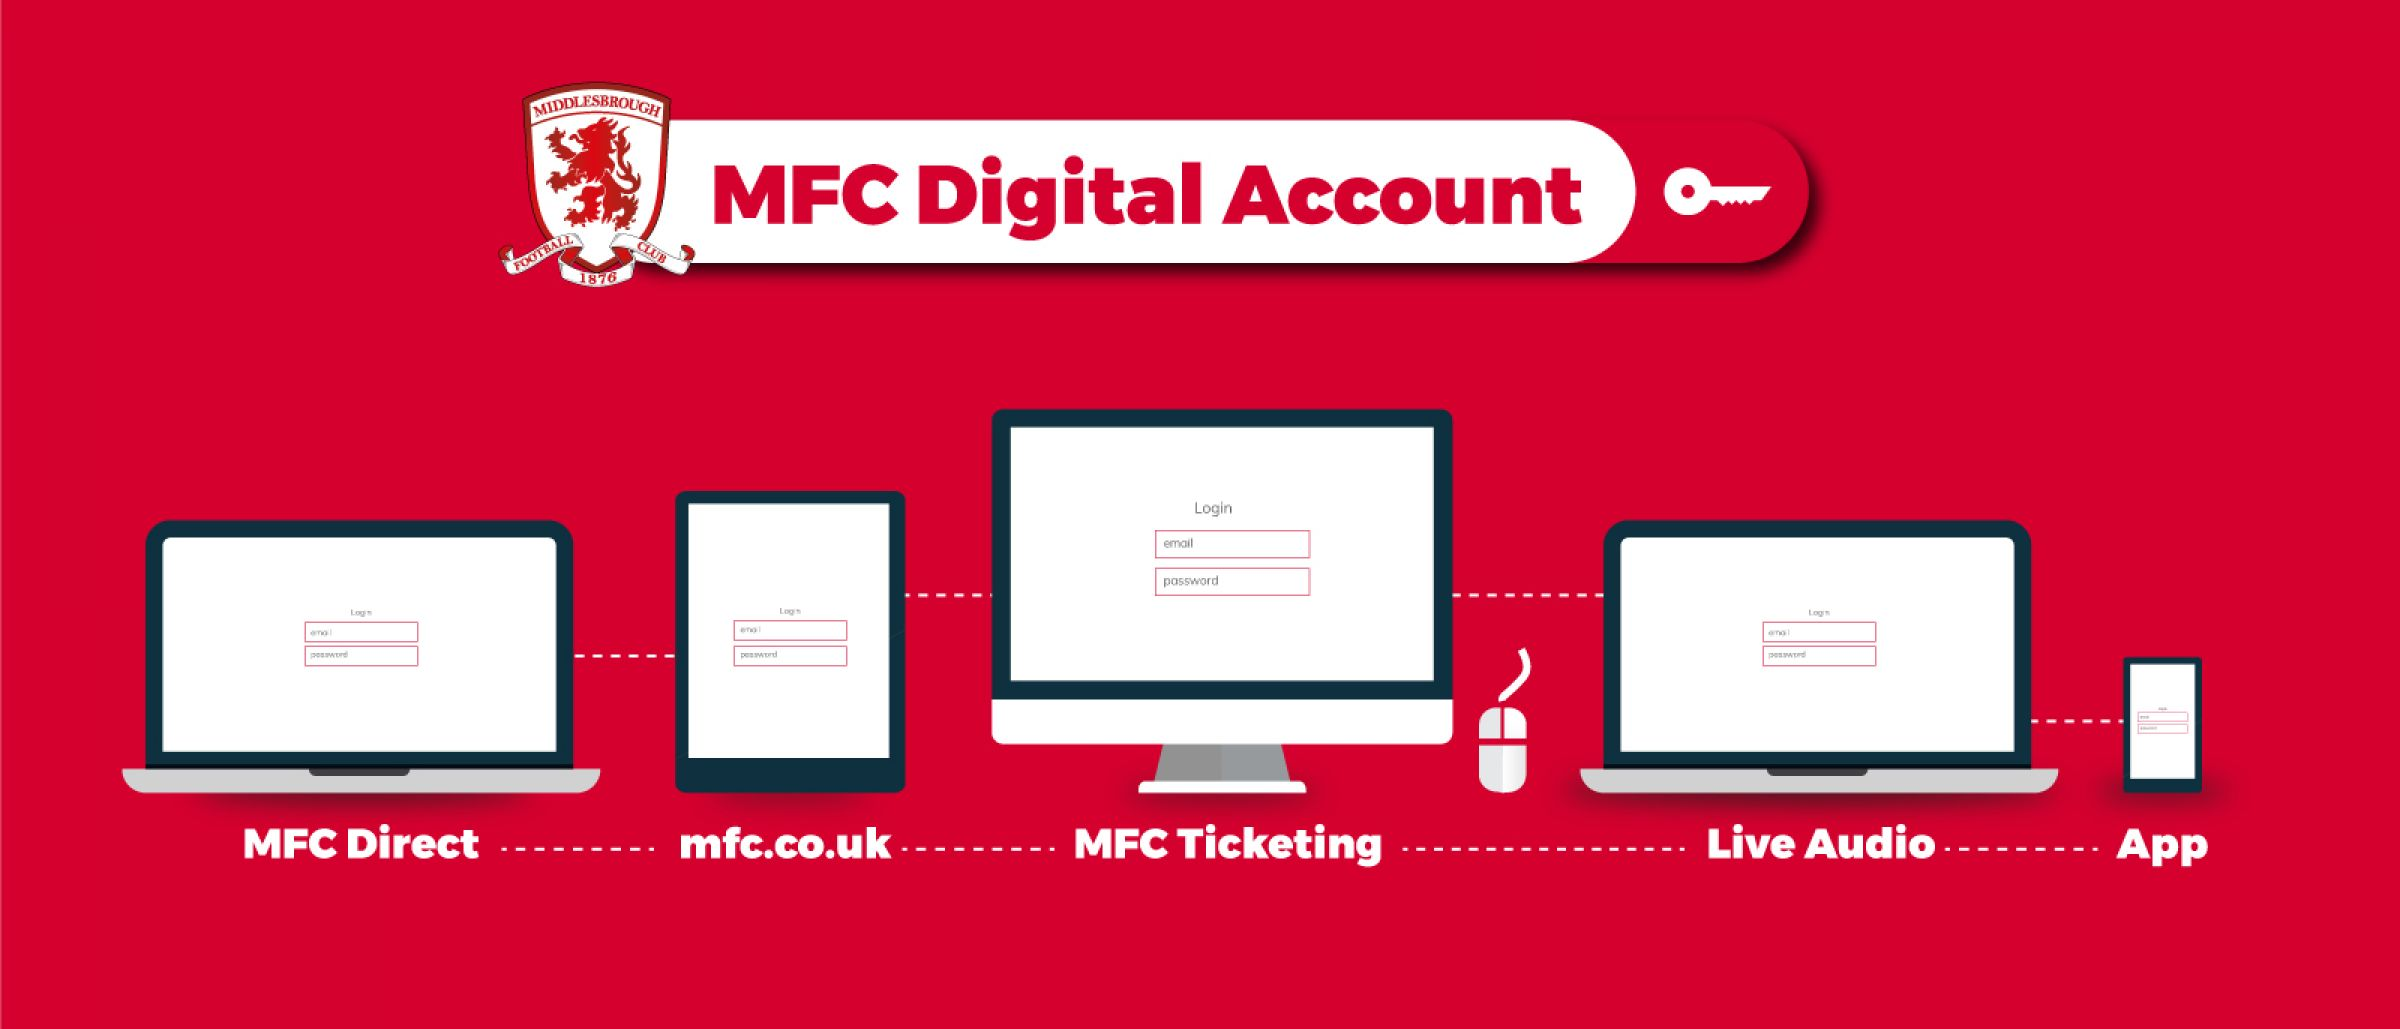 One single online account across all of MFC's digital properties